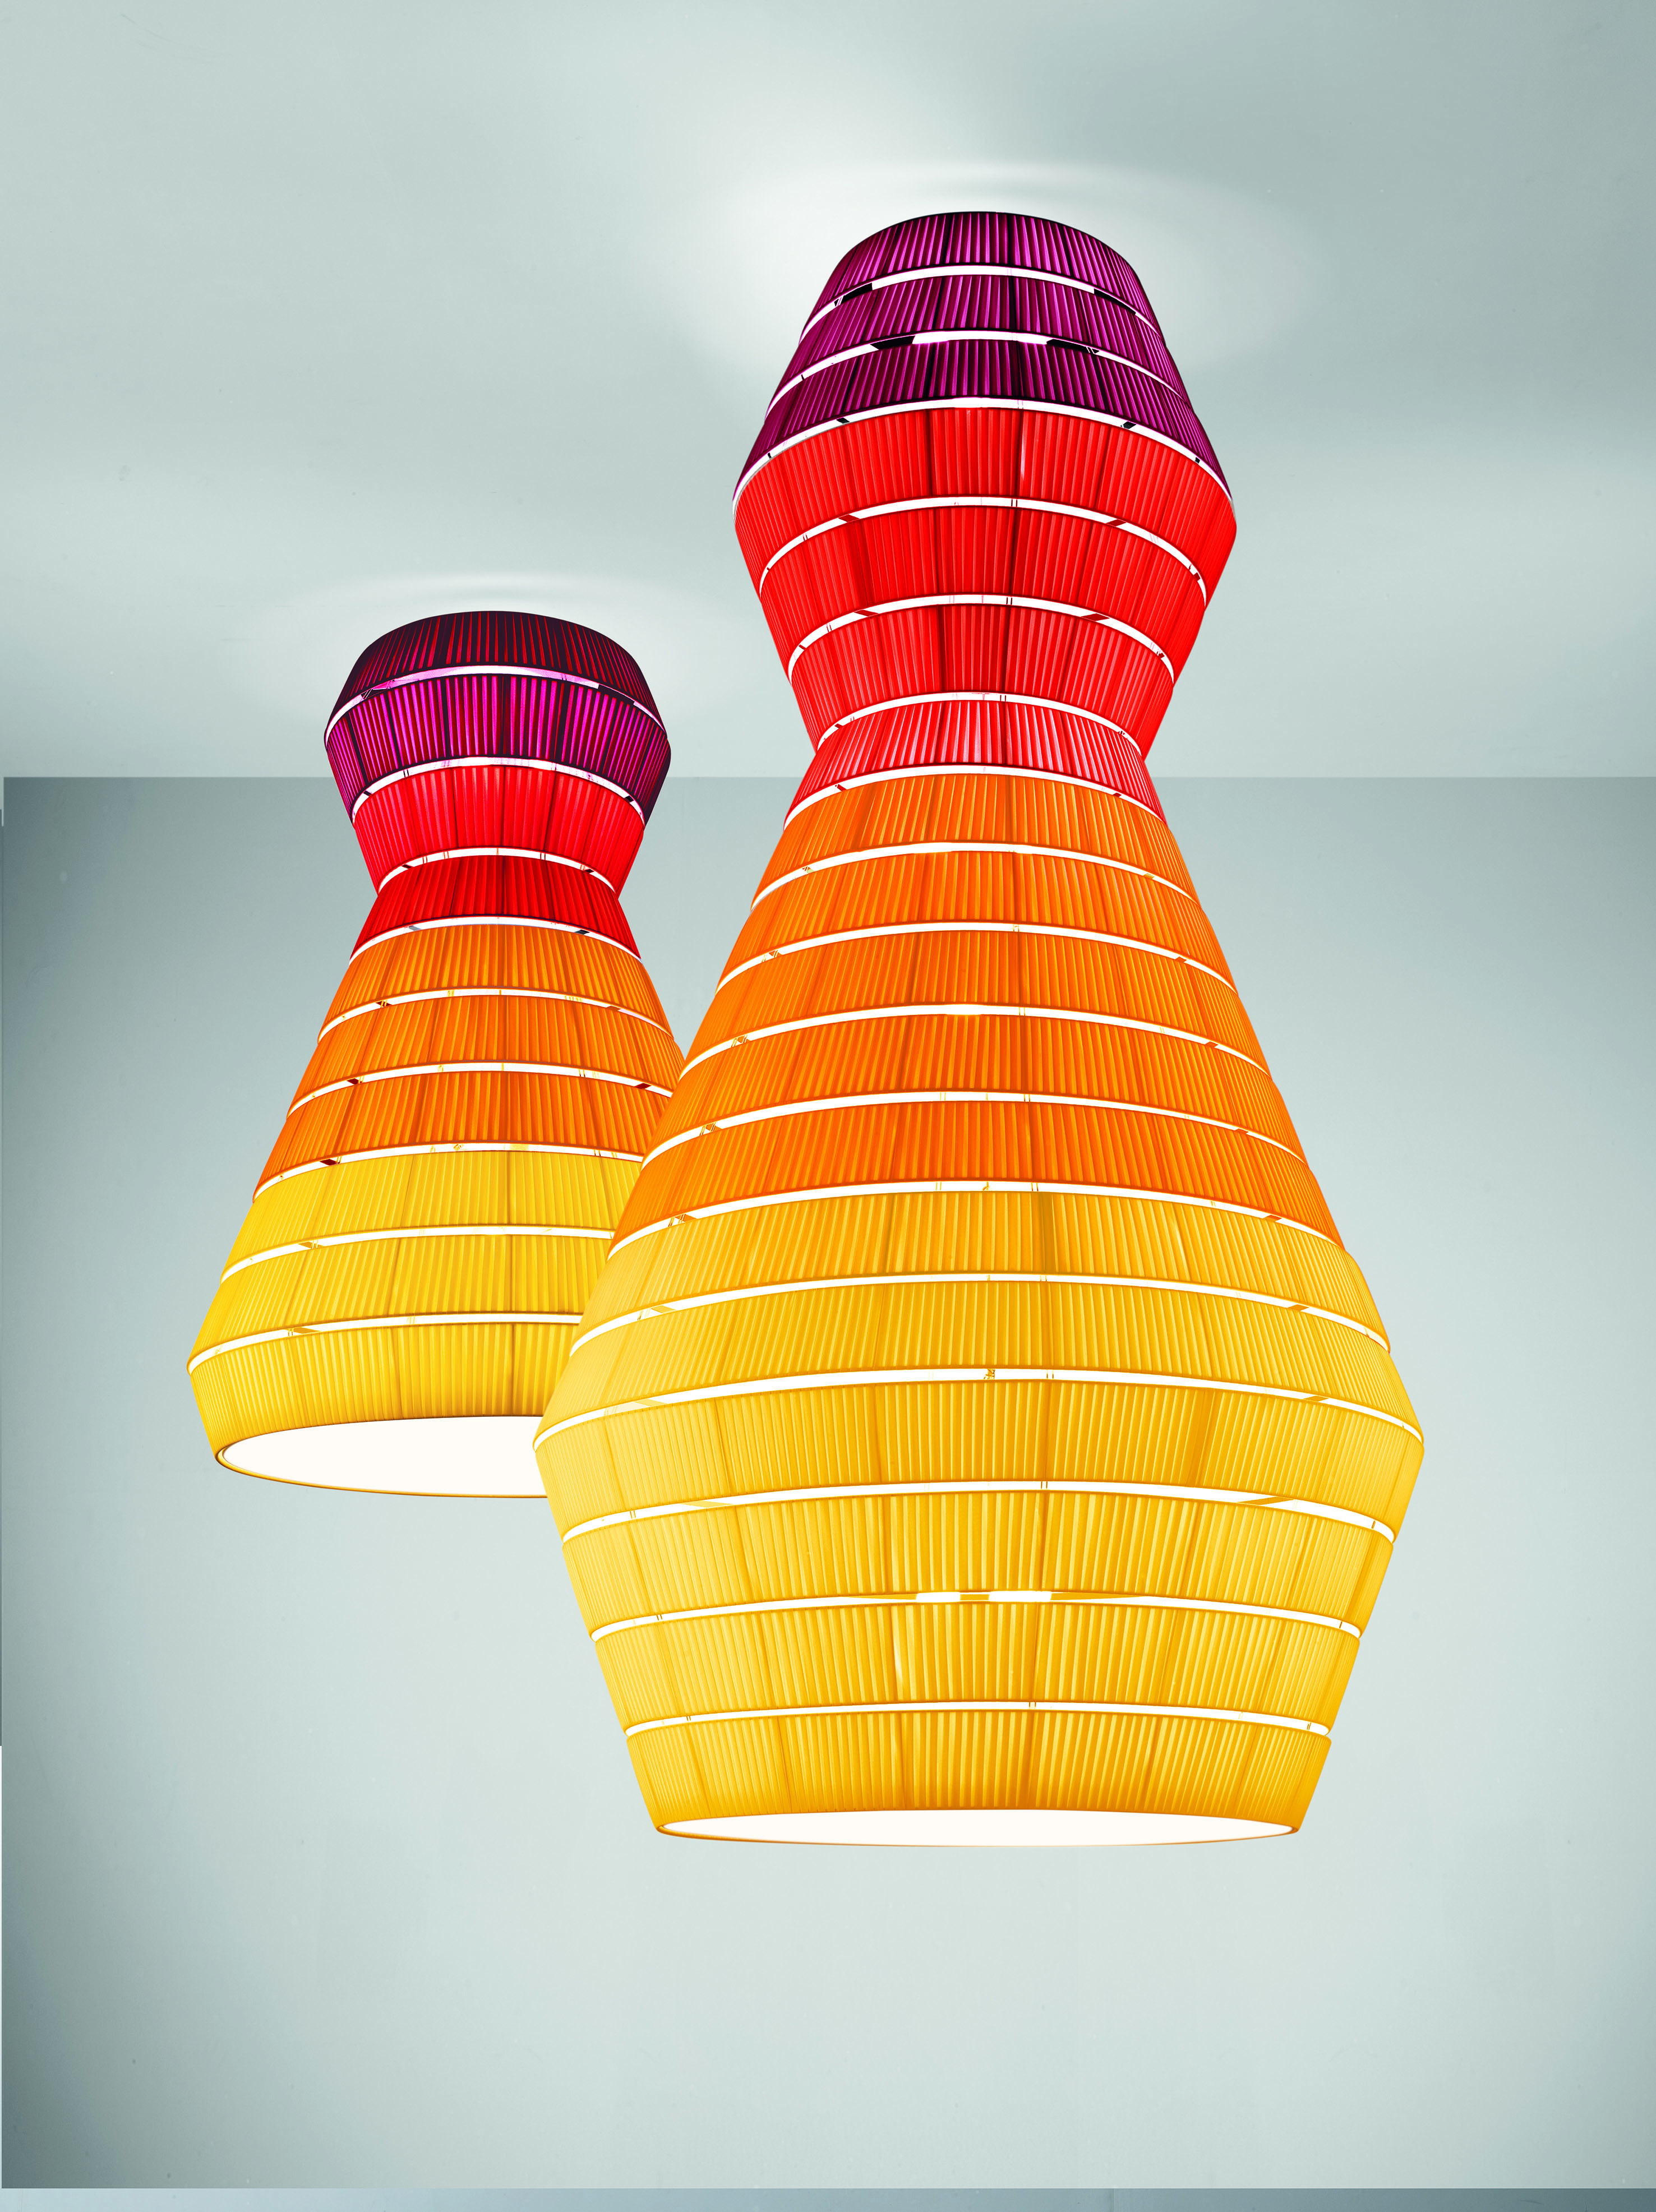 Layers, di Axo Light Design: Vanessa Vivian